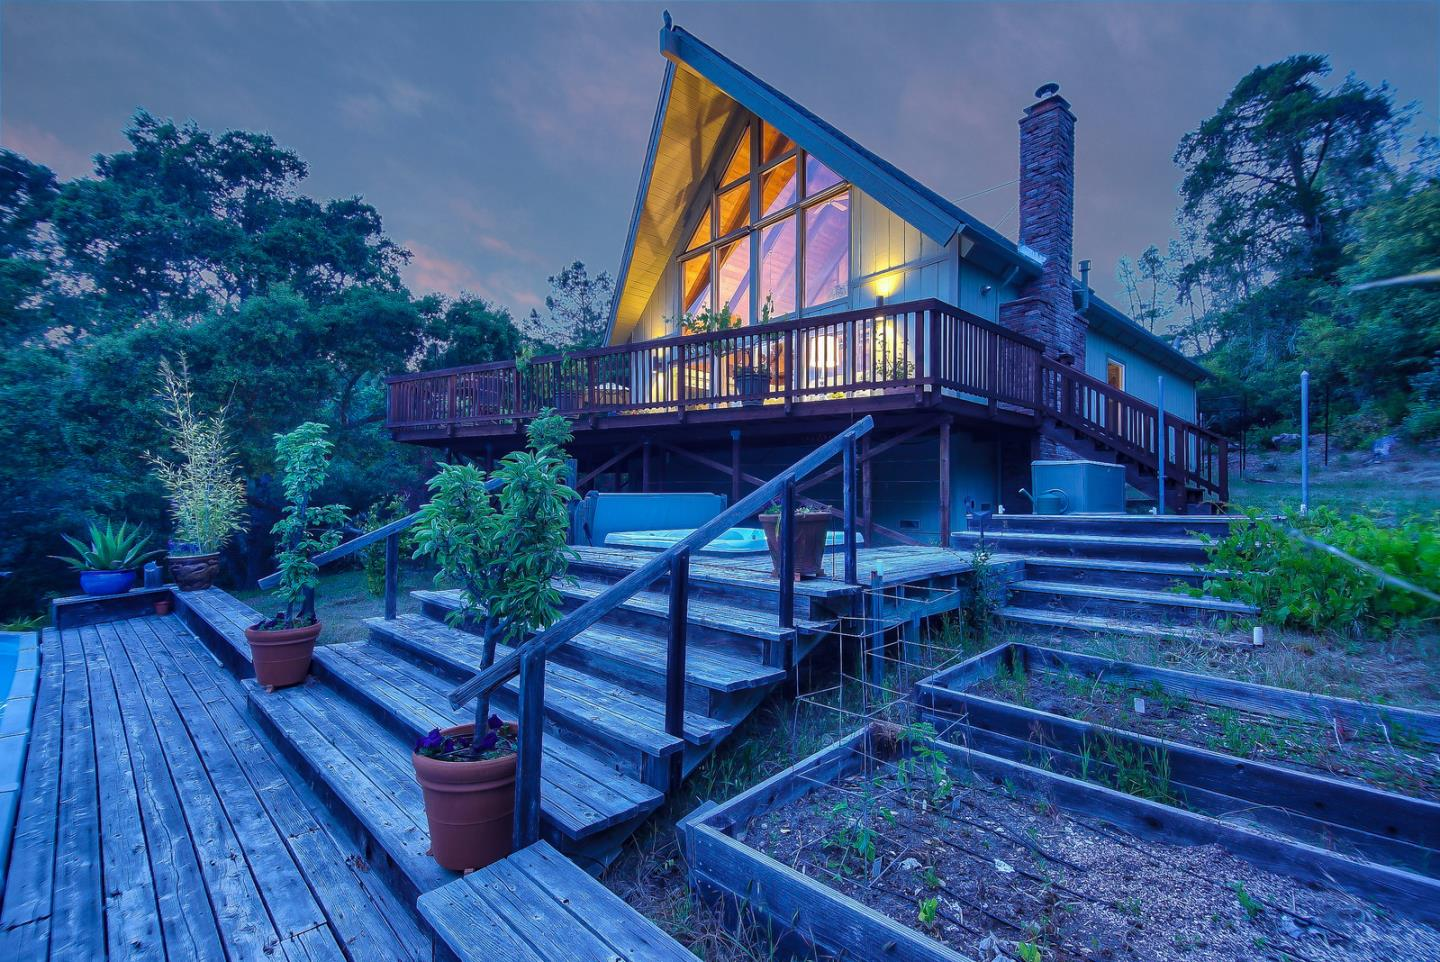 Sunshine and privacy abound at this wonderful mountain chalet in a coveted neighborhood of Bonny Doon approximately 5 miles to the coast and 15 minutes to Santa Cruz. The spacious floor plan features a great room with soaring high ceilings and a wall of windows overlooking the beautiful oak studded grounds. There are two comfortable bedrooms plus a large office that could serve as a family room or additional guest space. Outside, the wrap around deck extends the living space seamlessly creating an ideal venue for entertaining or simply enjoying the good life in the Santa Cruz Mountains. Backing up the Bonny Doon Ecological Reserve, there's a wonderful sense of space on the .95 acre parcel with plenty of room to garden, go for a swim, or relax in the brand new hot tub.